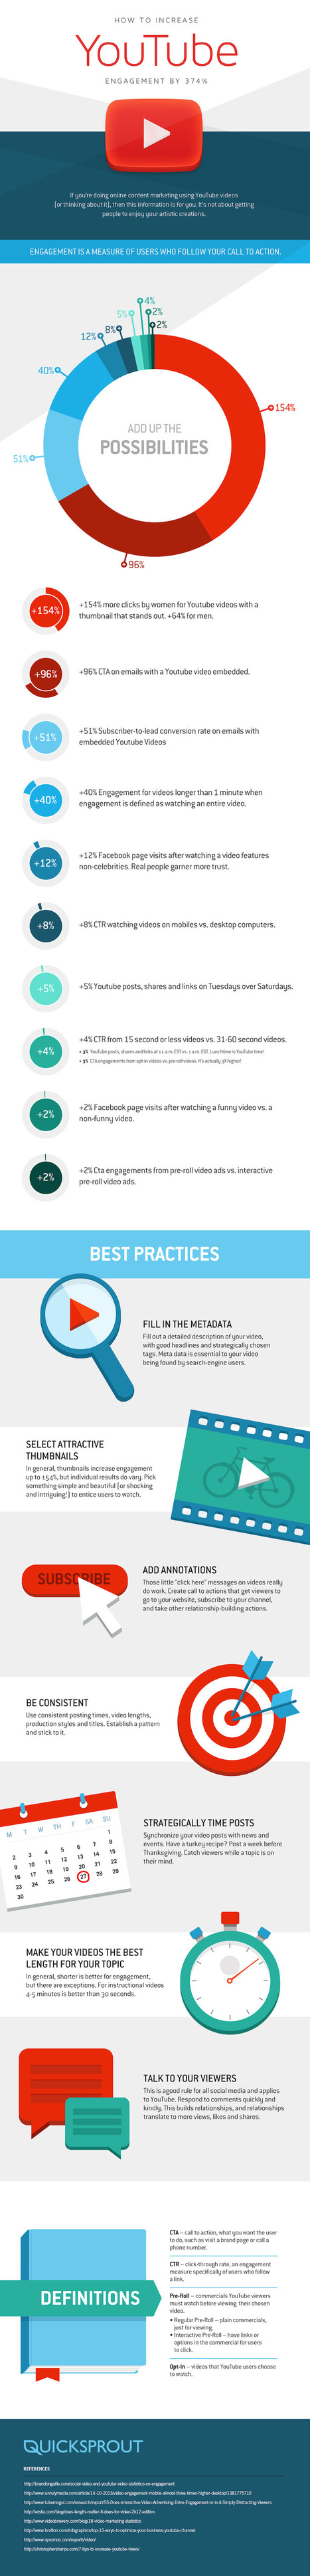 How to Increase Your YouTube Engagement by 374% [Infographic ] | Social Media and Marketing | Scoop.it